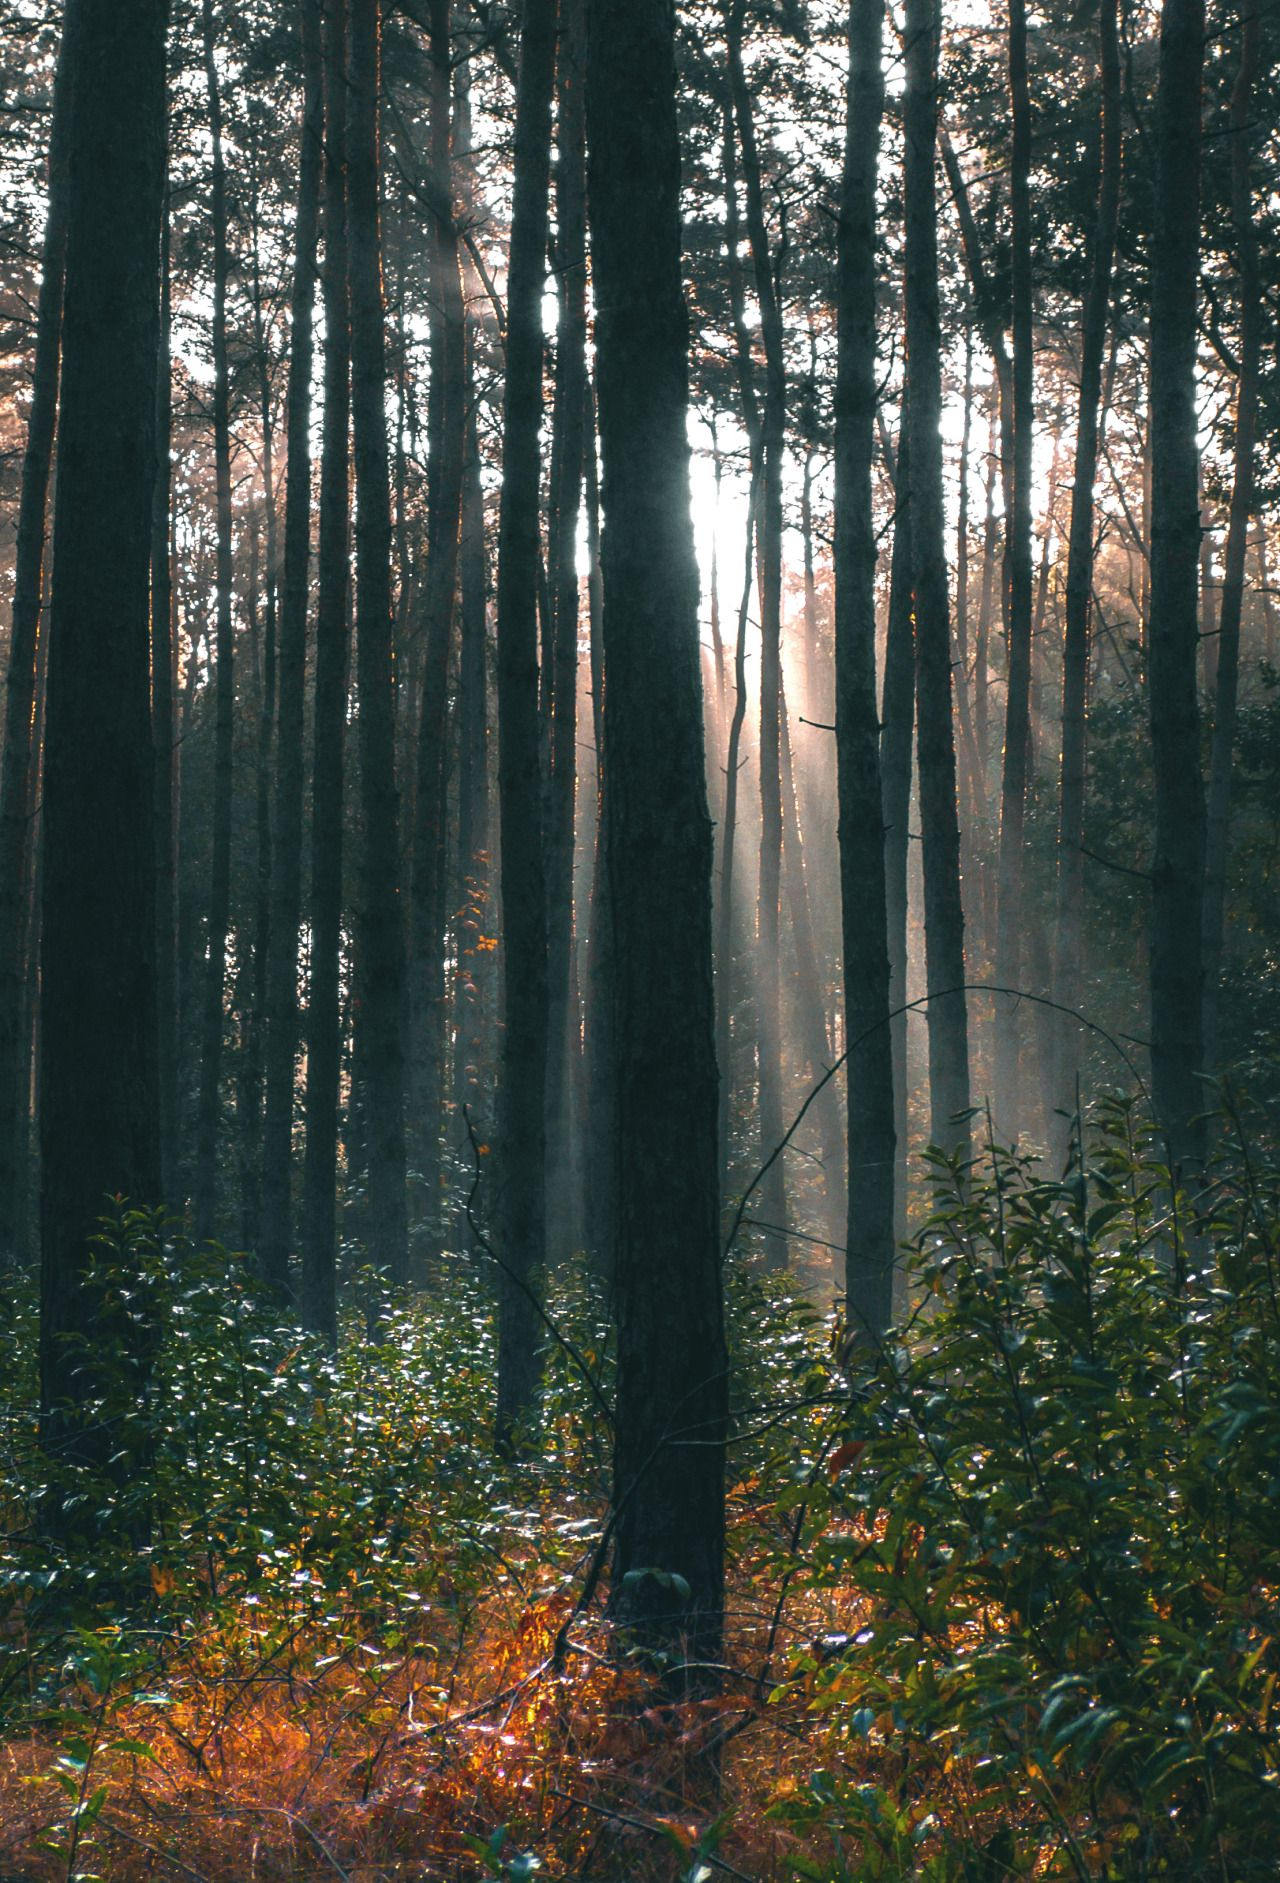 Keep me busy with my old cam by Denny Bitte - #artists #autumn #fog #Forest: #landscape #nature #on #original #photographers #sunrise #tumblr